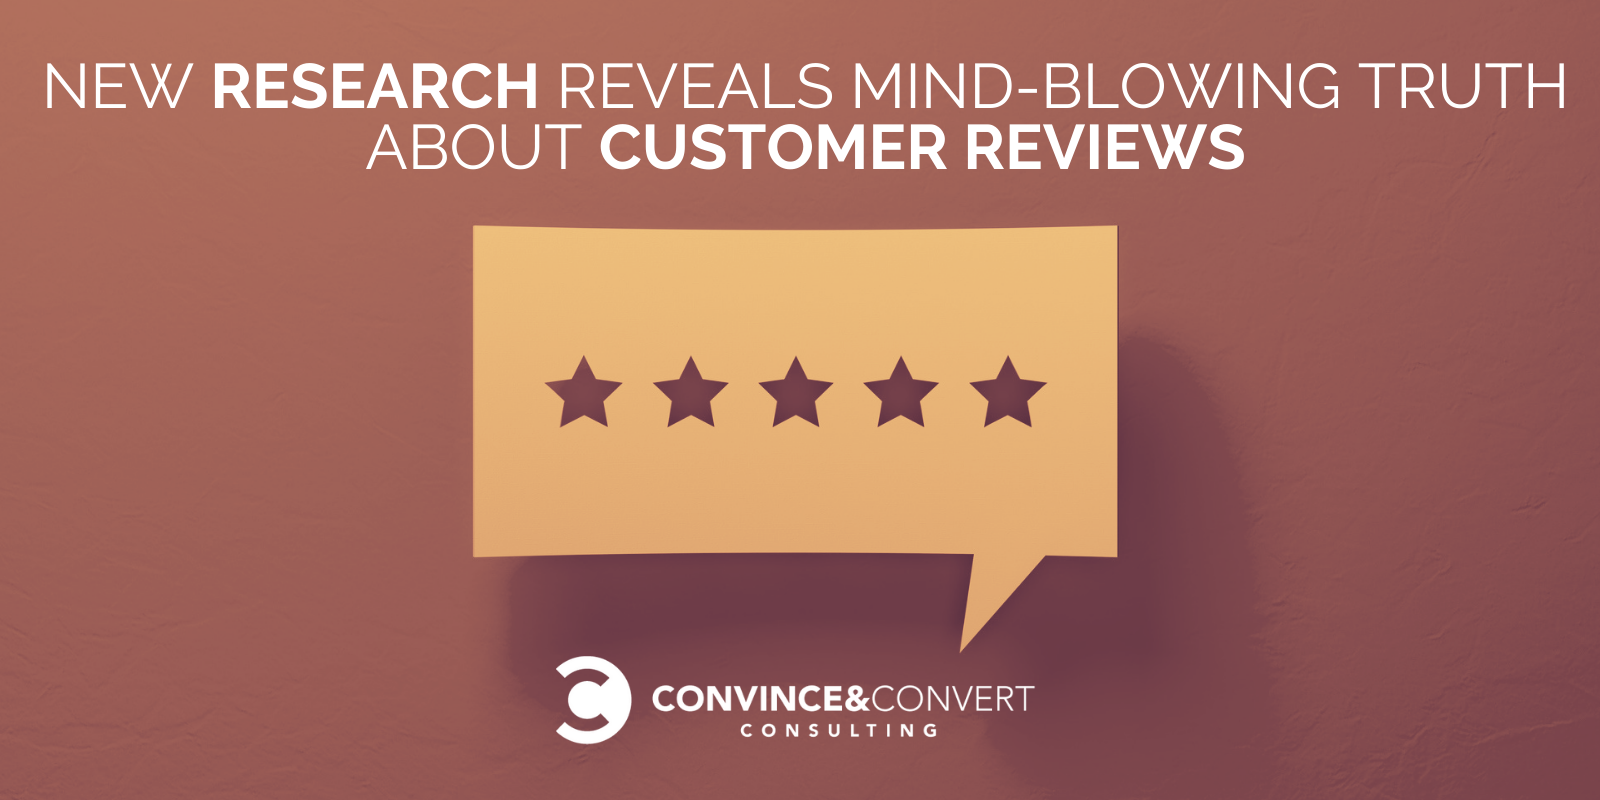 New Research Reveals Mind-Blowing Truth About Customer Reviews